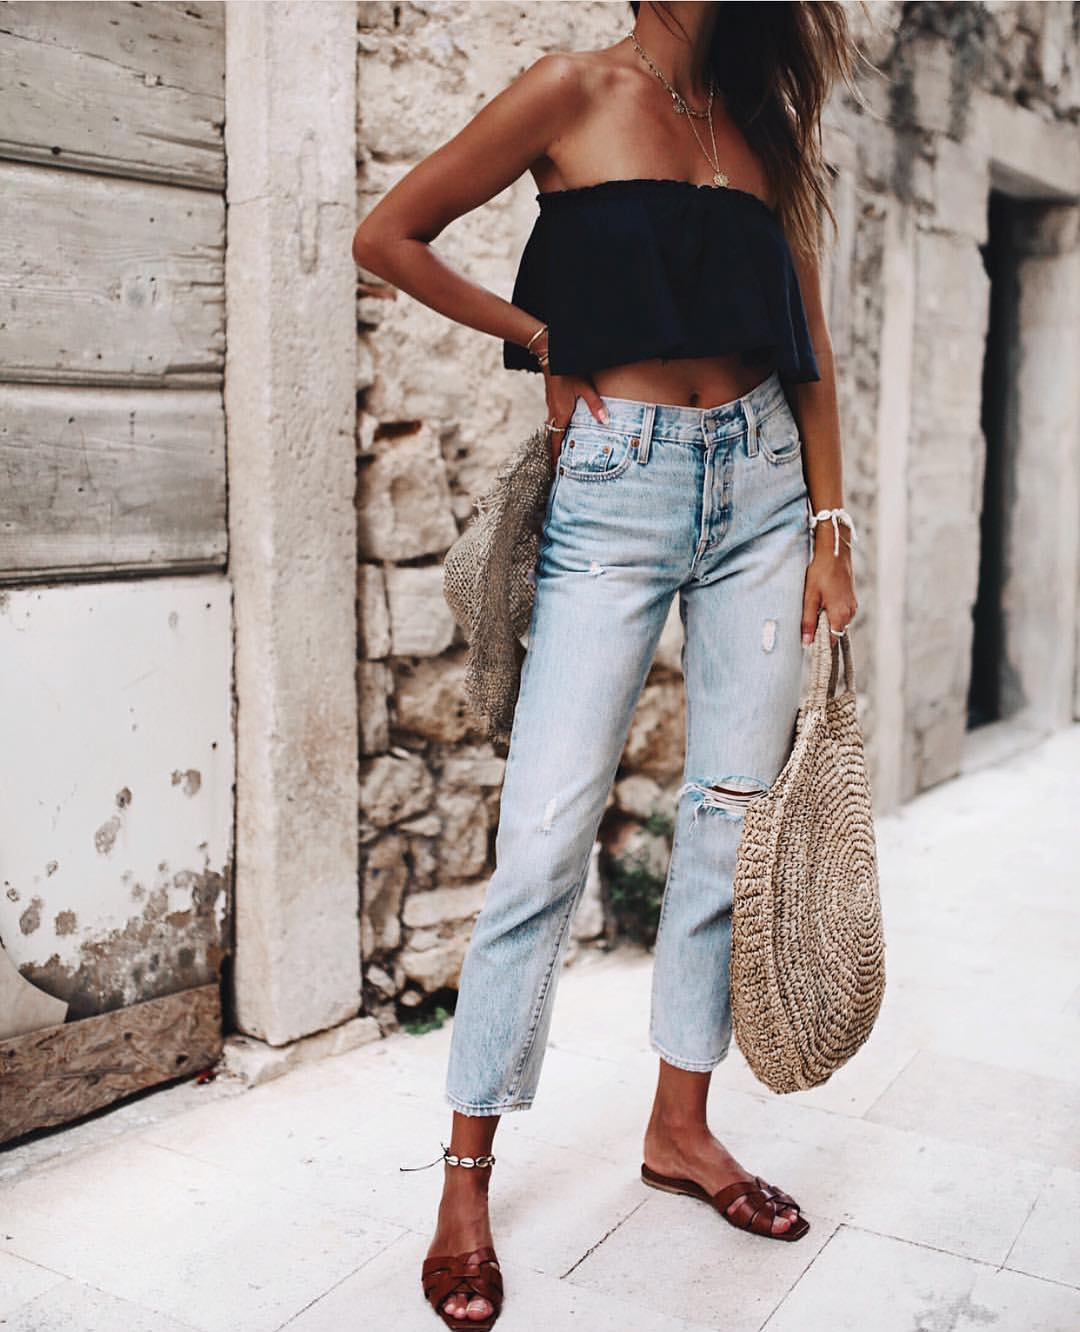 Black Ruffle Bandeau Top And Ankle Jeans In Wash Blue For Summer 2019